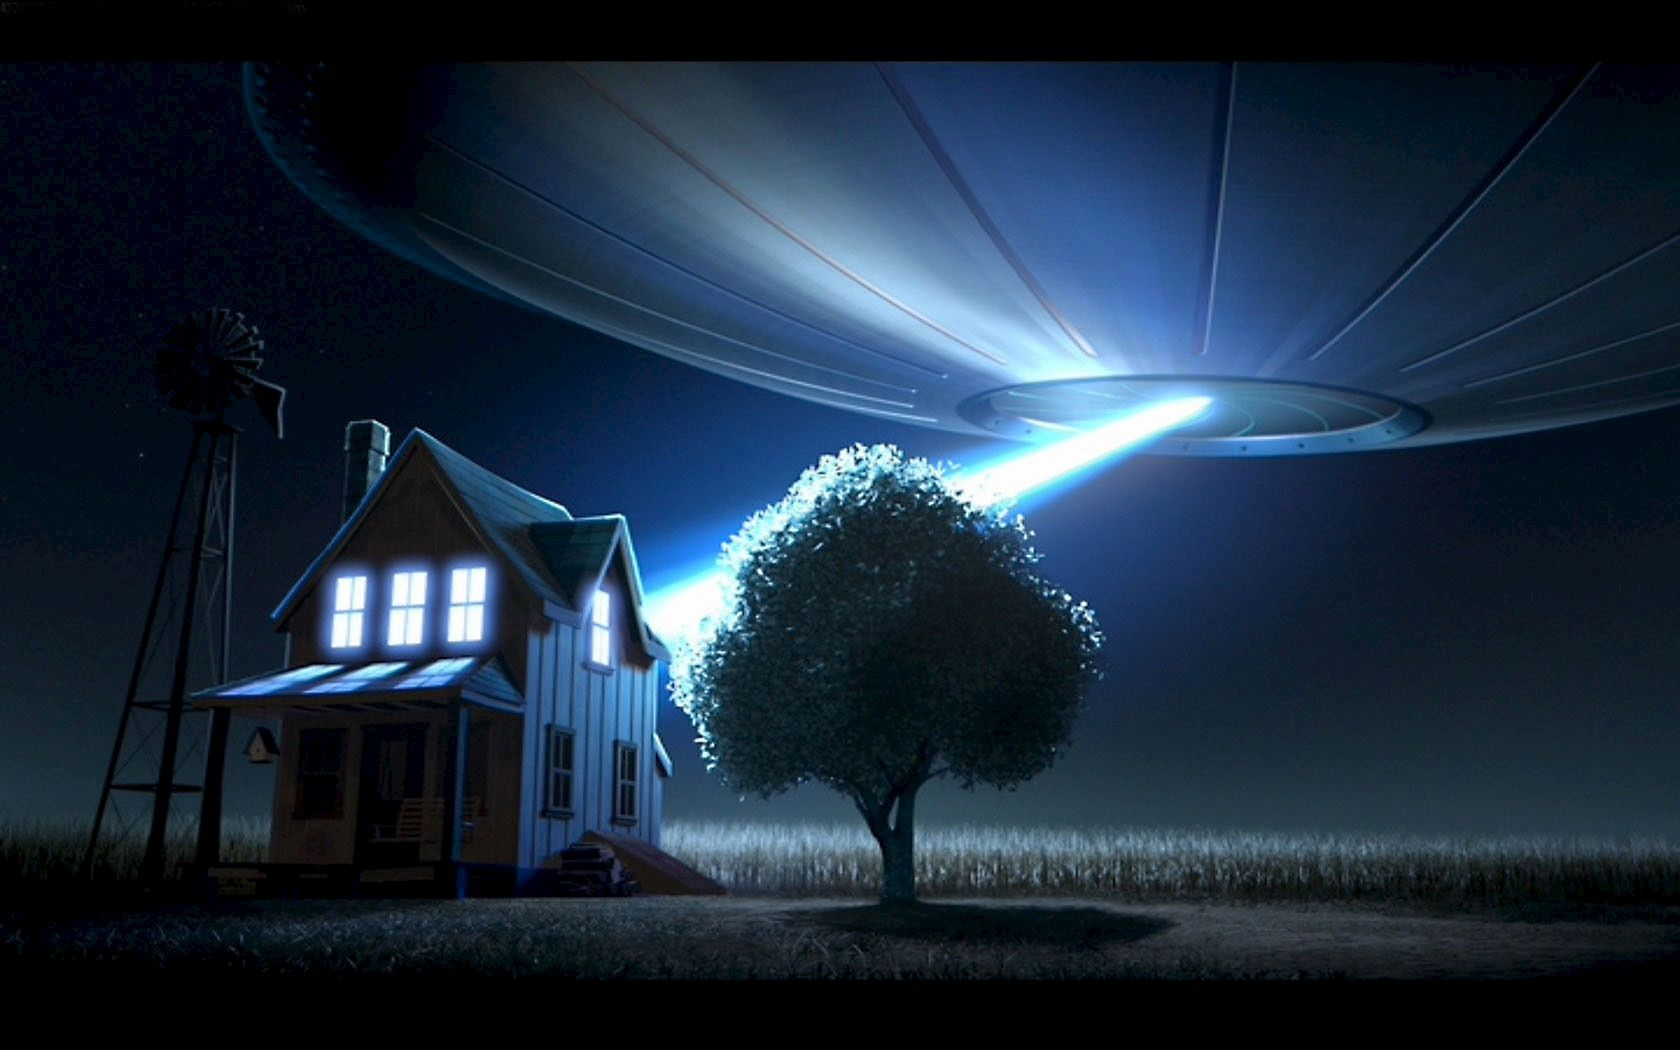 3D UFO Attacked The House Pictures Art Wallpaper HD Widescreen 1680x1050